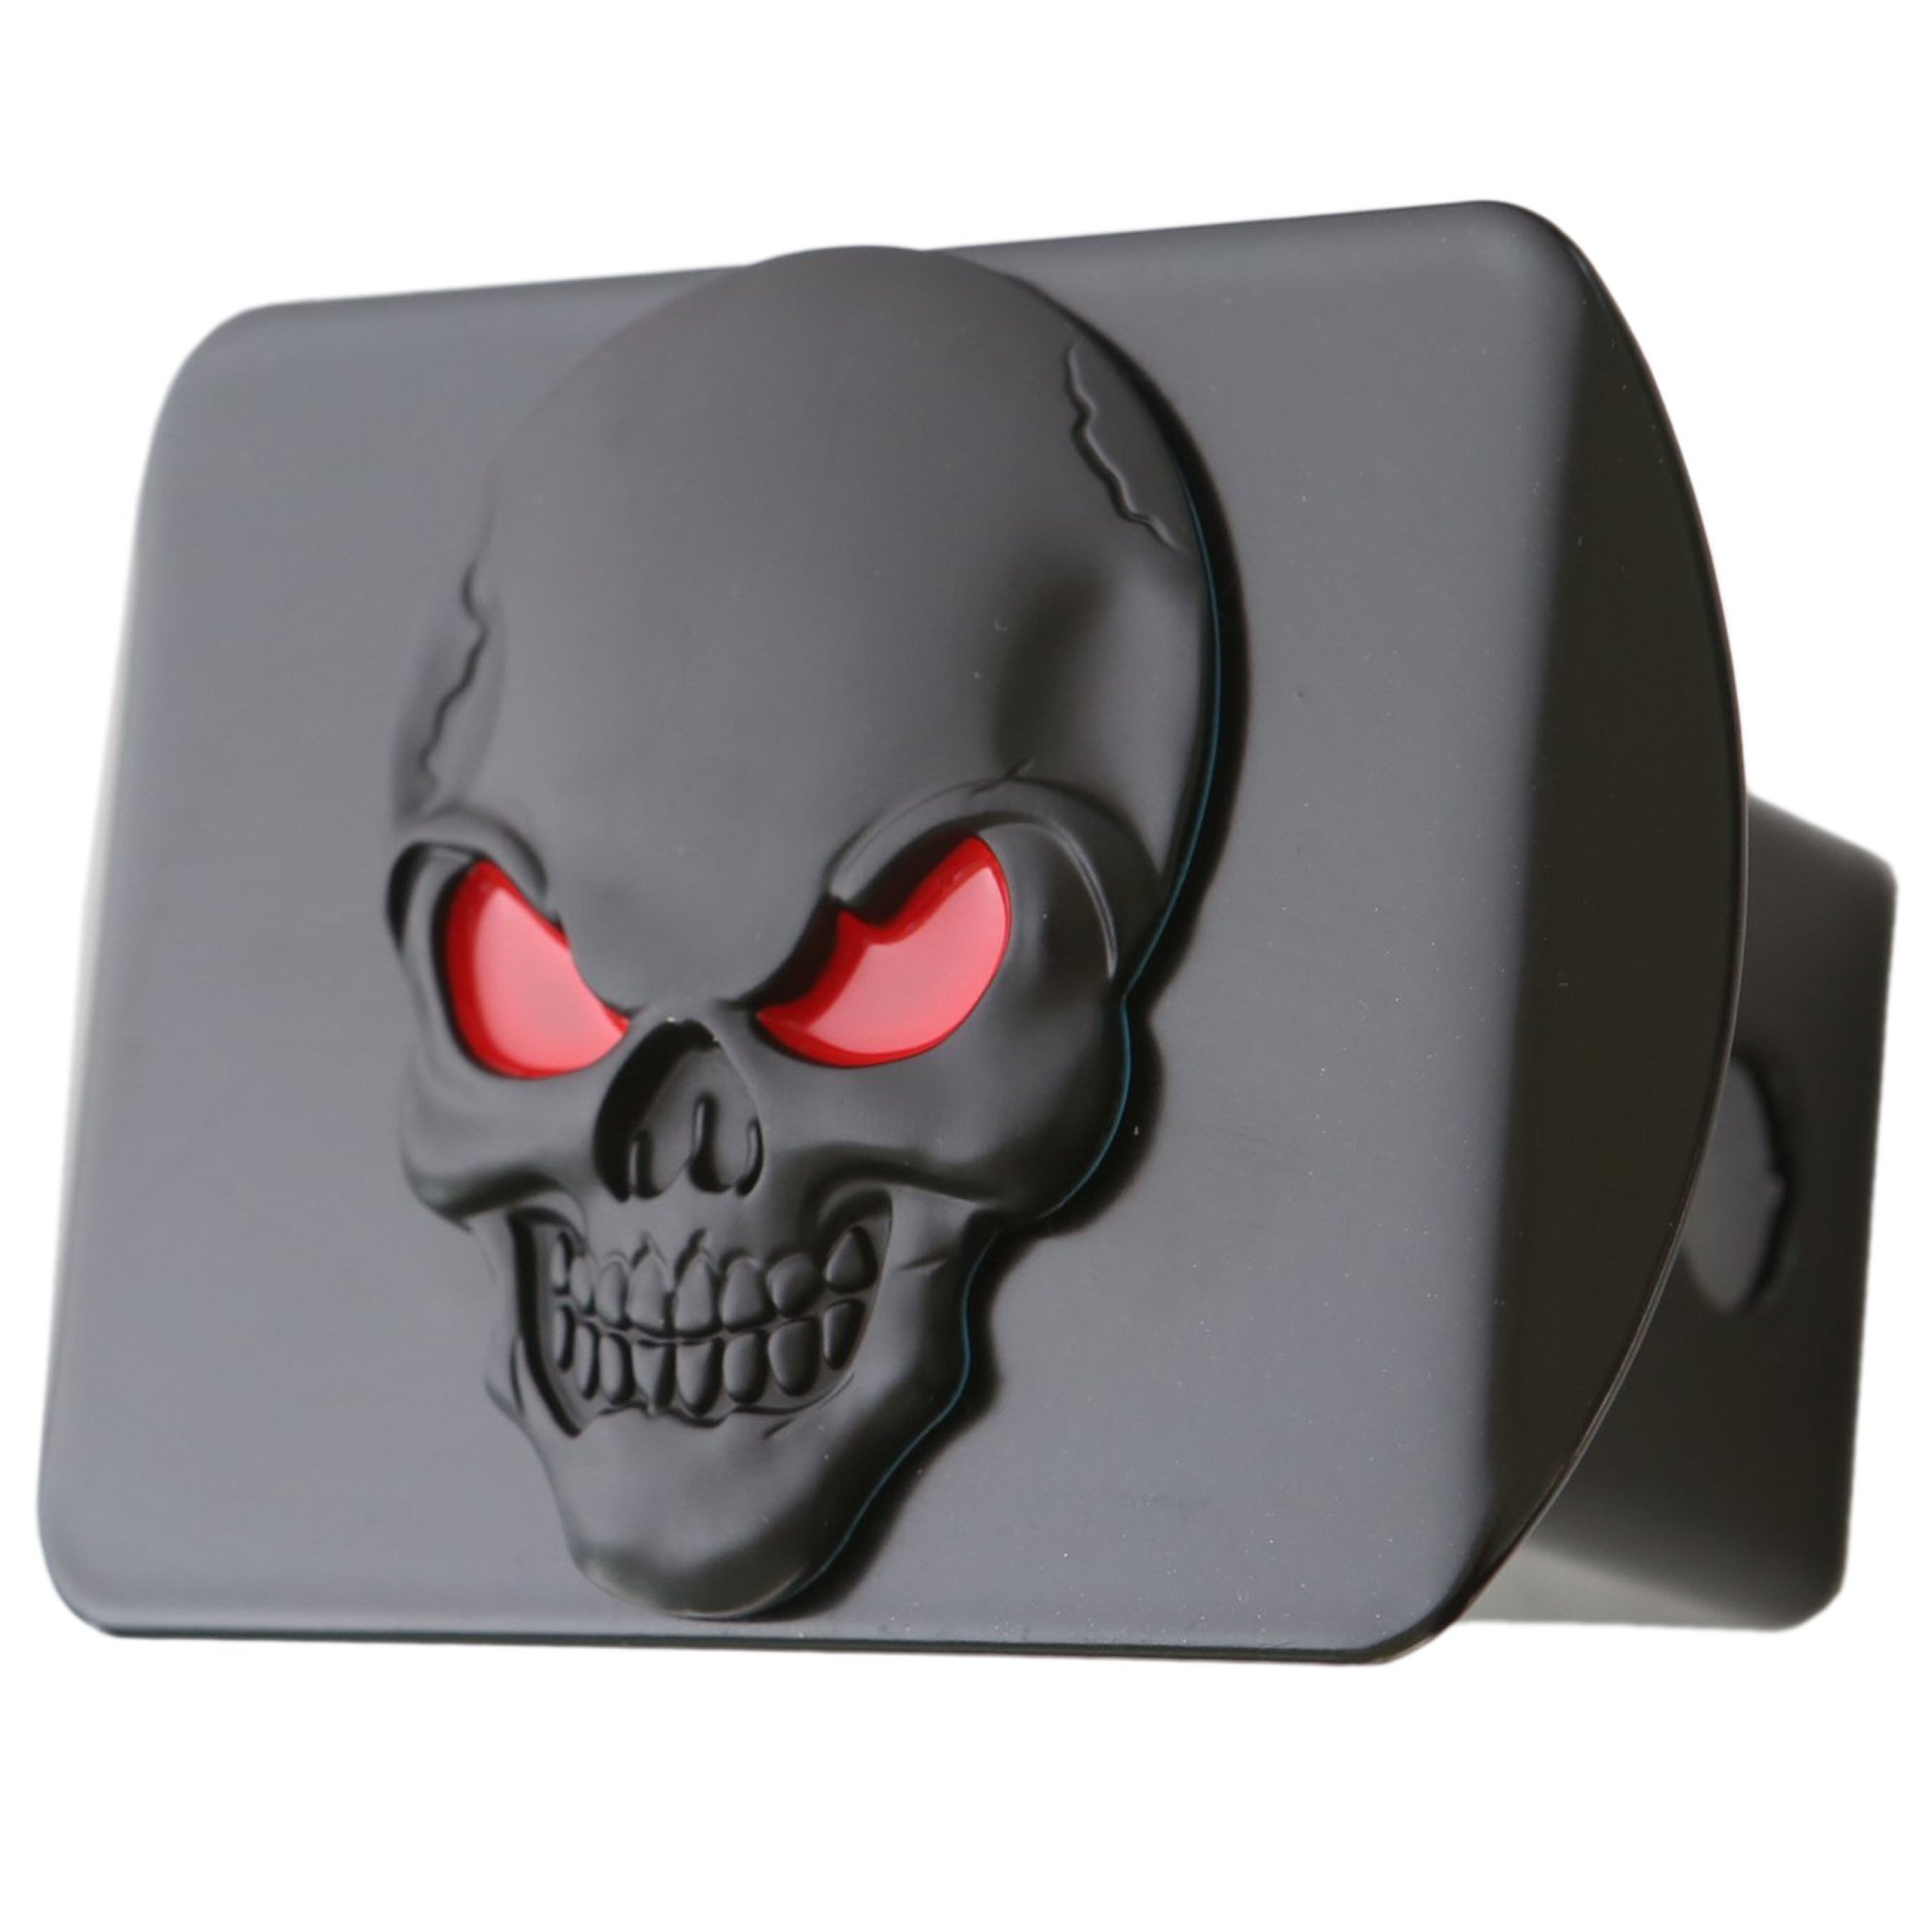 "LFPartS 100% Metal Skull 3D Emblem Trailer Hitch Cover Fits 2"" Receivers (Black Red on Black)"